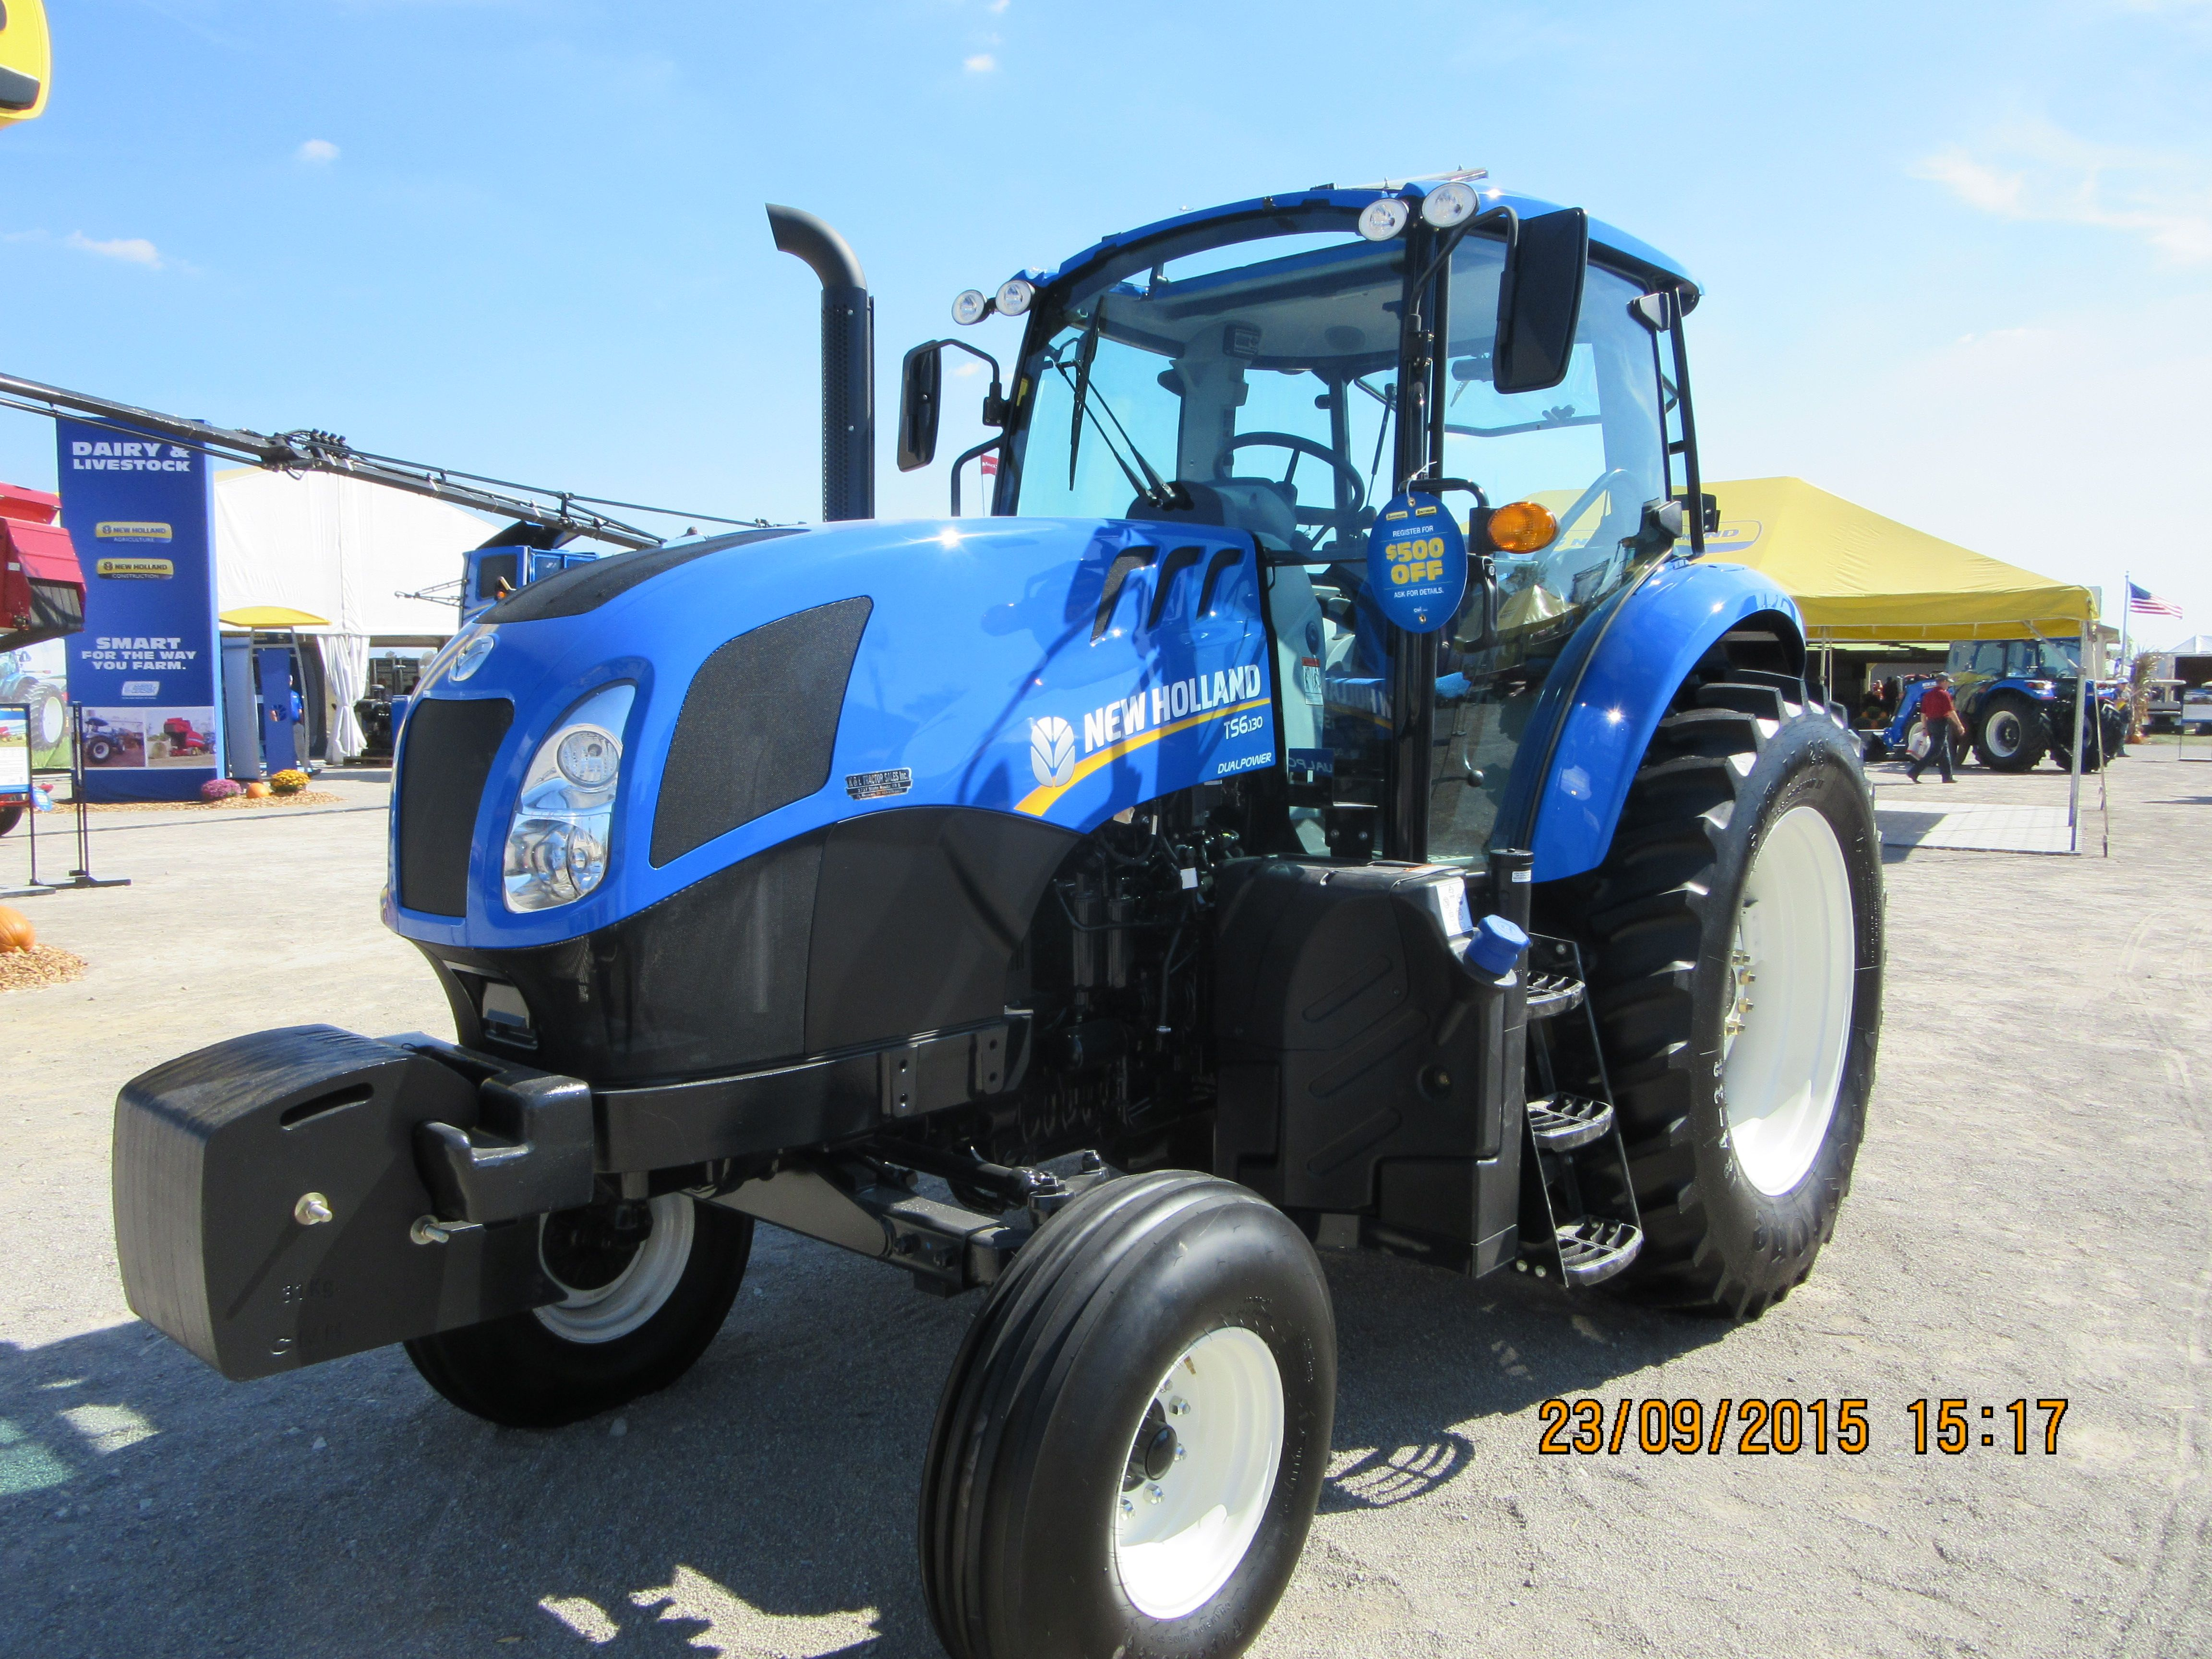 New Holland T6 130 New Holland Tractors Ford News